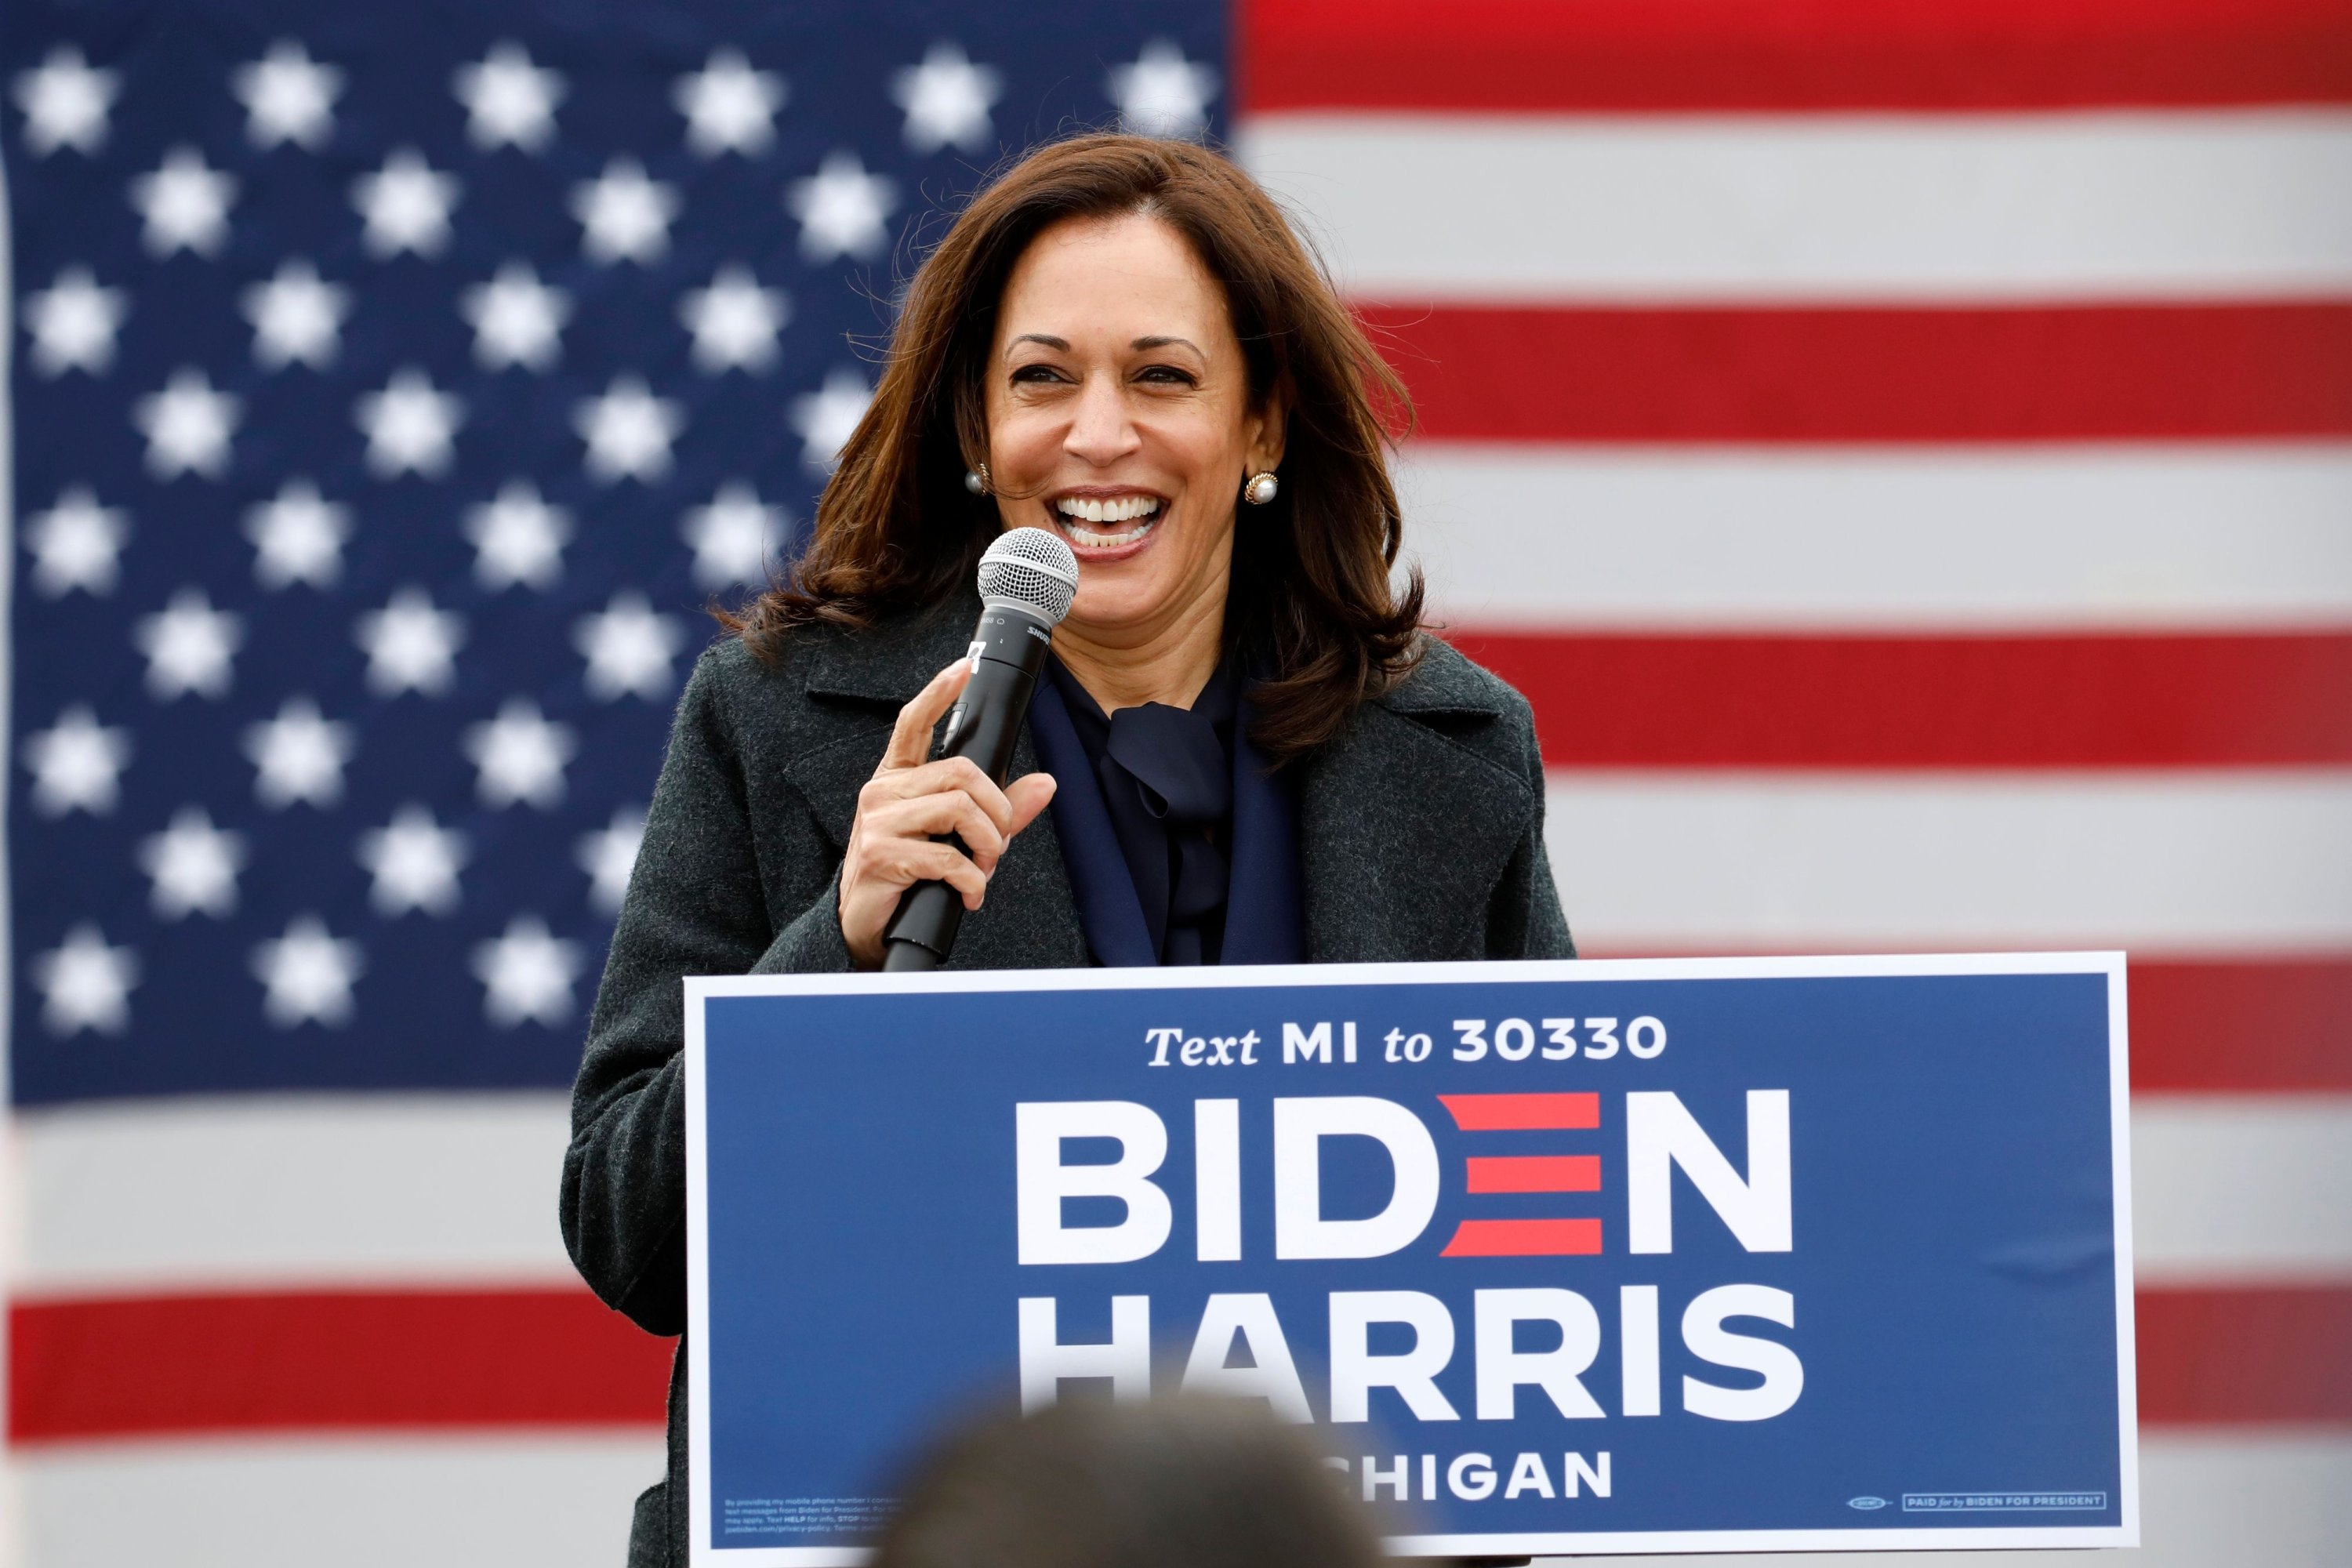 In this file photo taken on Oct. 25, 2020 Democratic vice presidential nominee Senator Kamala Harris (D-CA) speaks at a campaign stop at IBEW Local 58 in Detroit, Michigan. (AFP Photo)